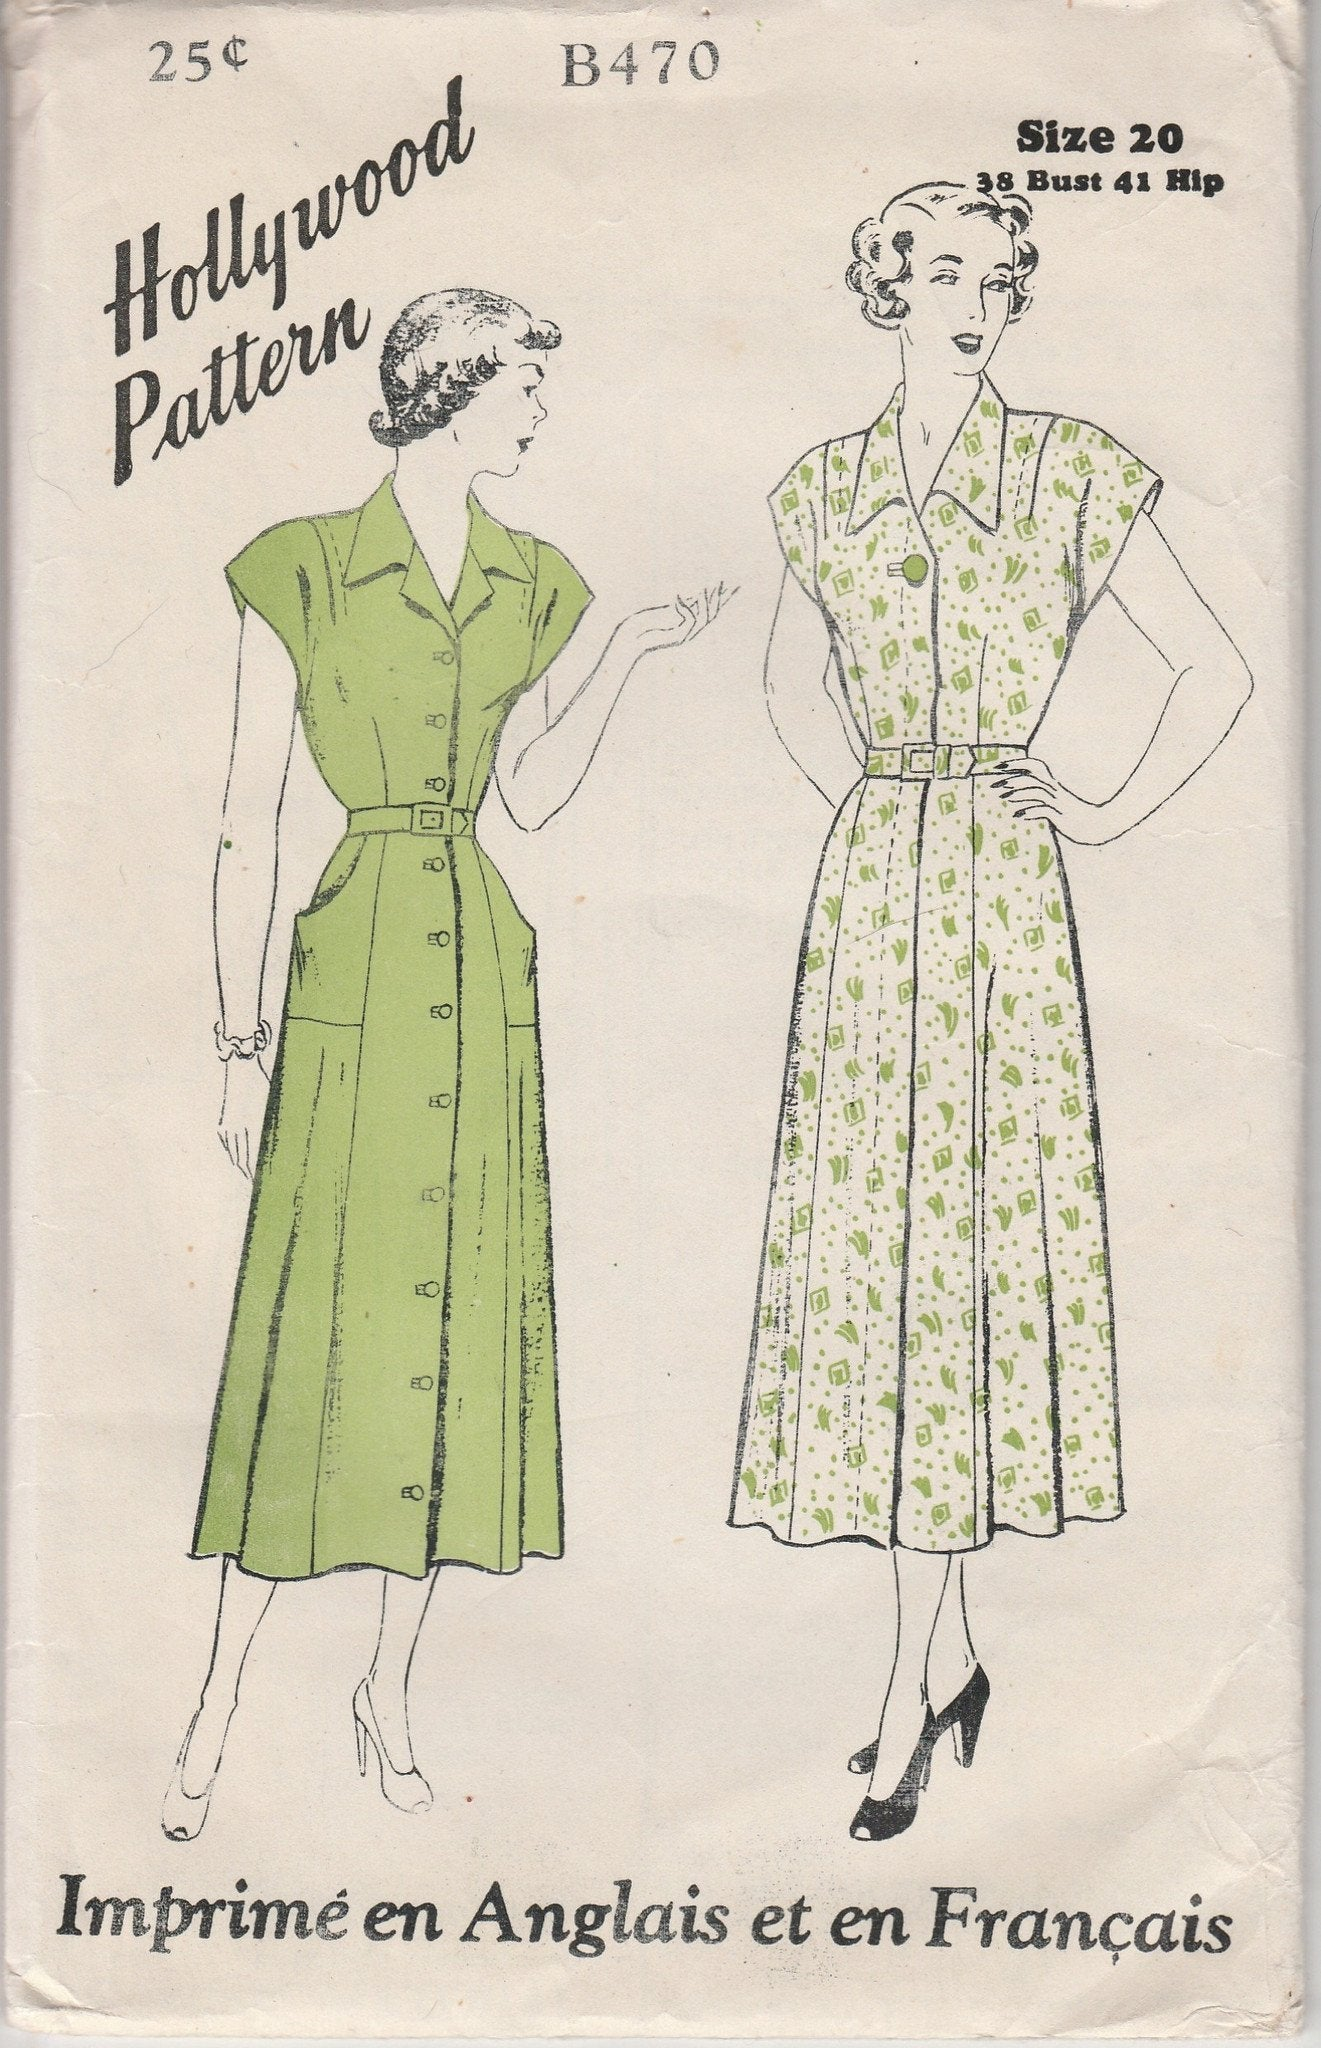 Hollywood B470 Ladies Front Closing Dress Vintage 1940's Sewing Pattern Bilingual - VintageStitching - Vintage Sewing Patterns